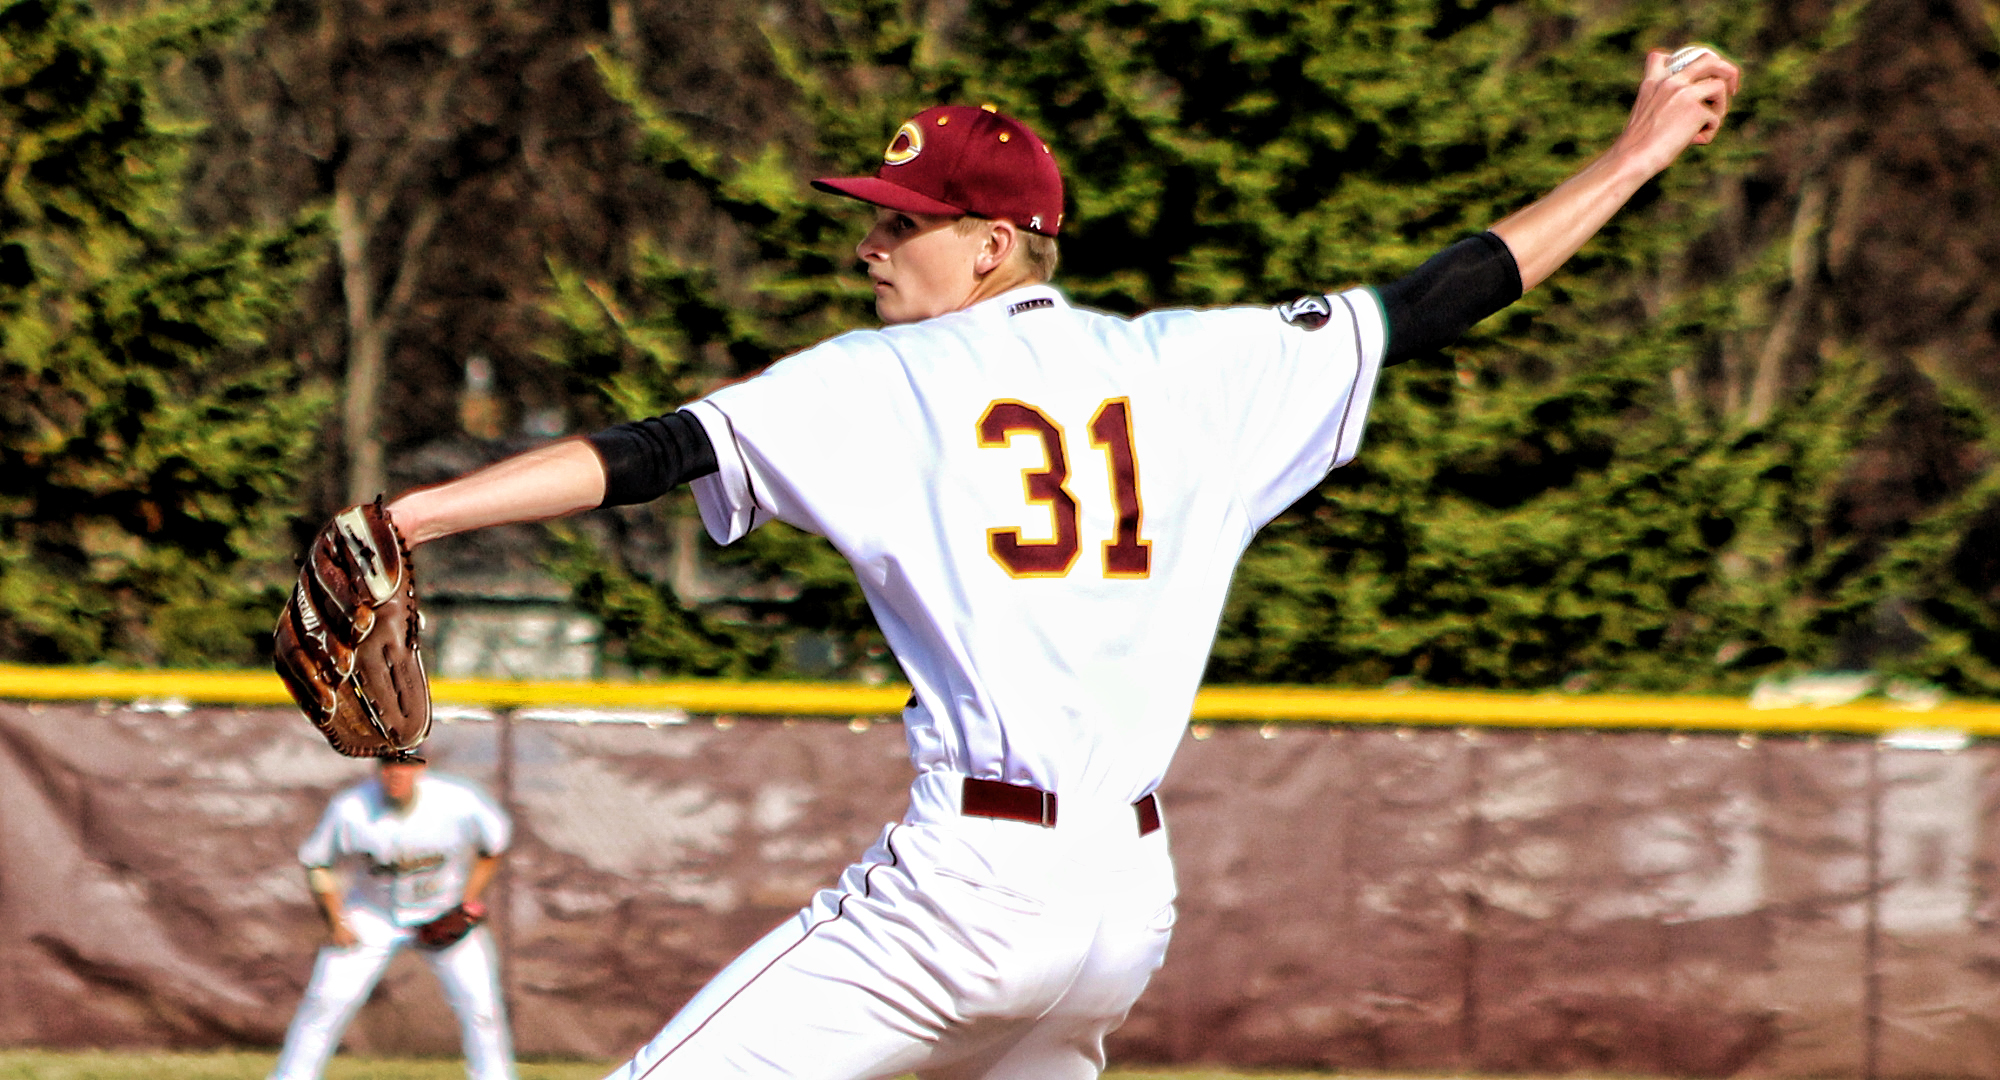 Sophomore pitcher Ty Syverson pitched a complete game to get the win in the Cobbers' final game in Florida